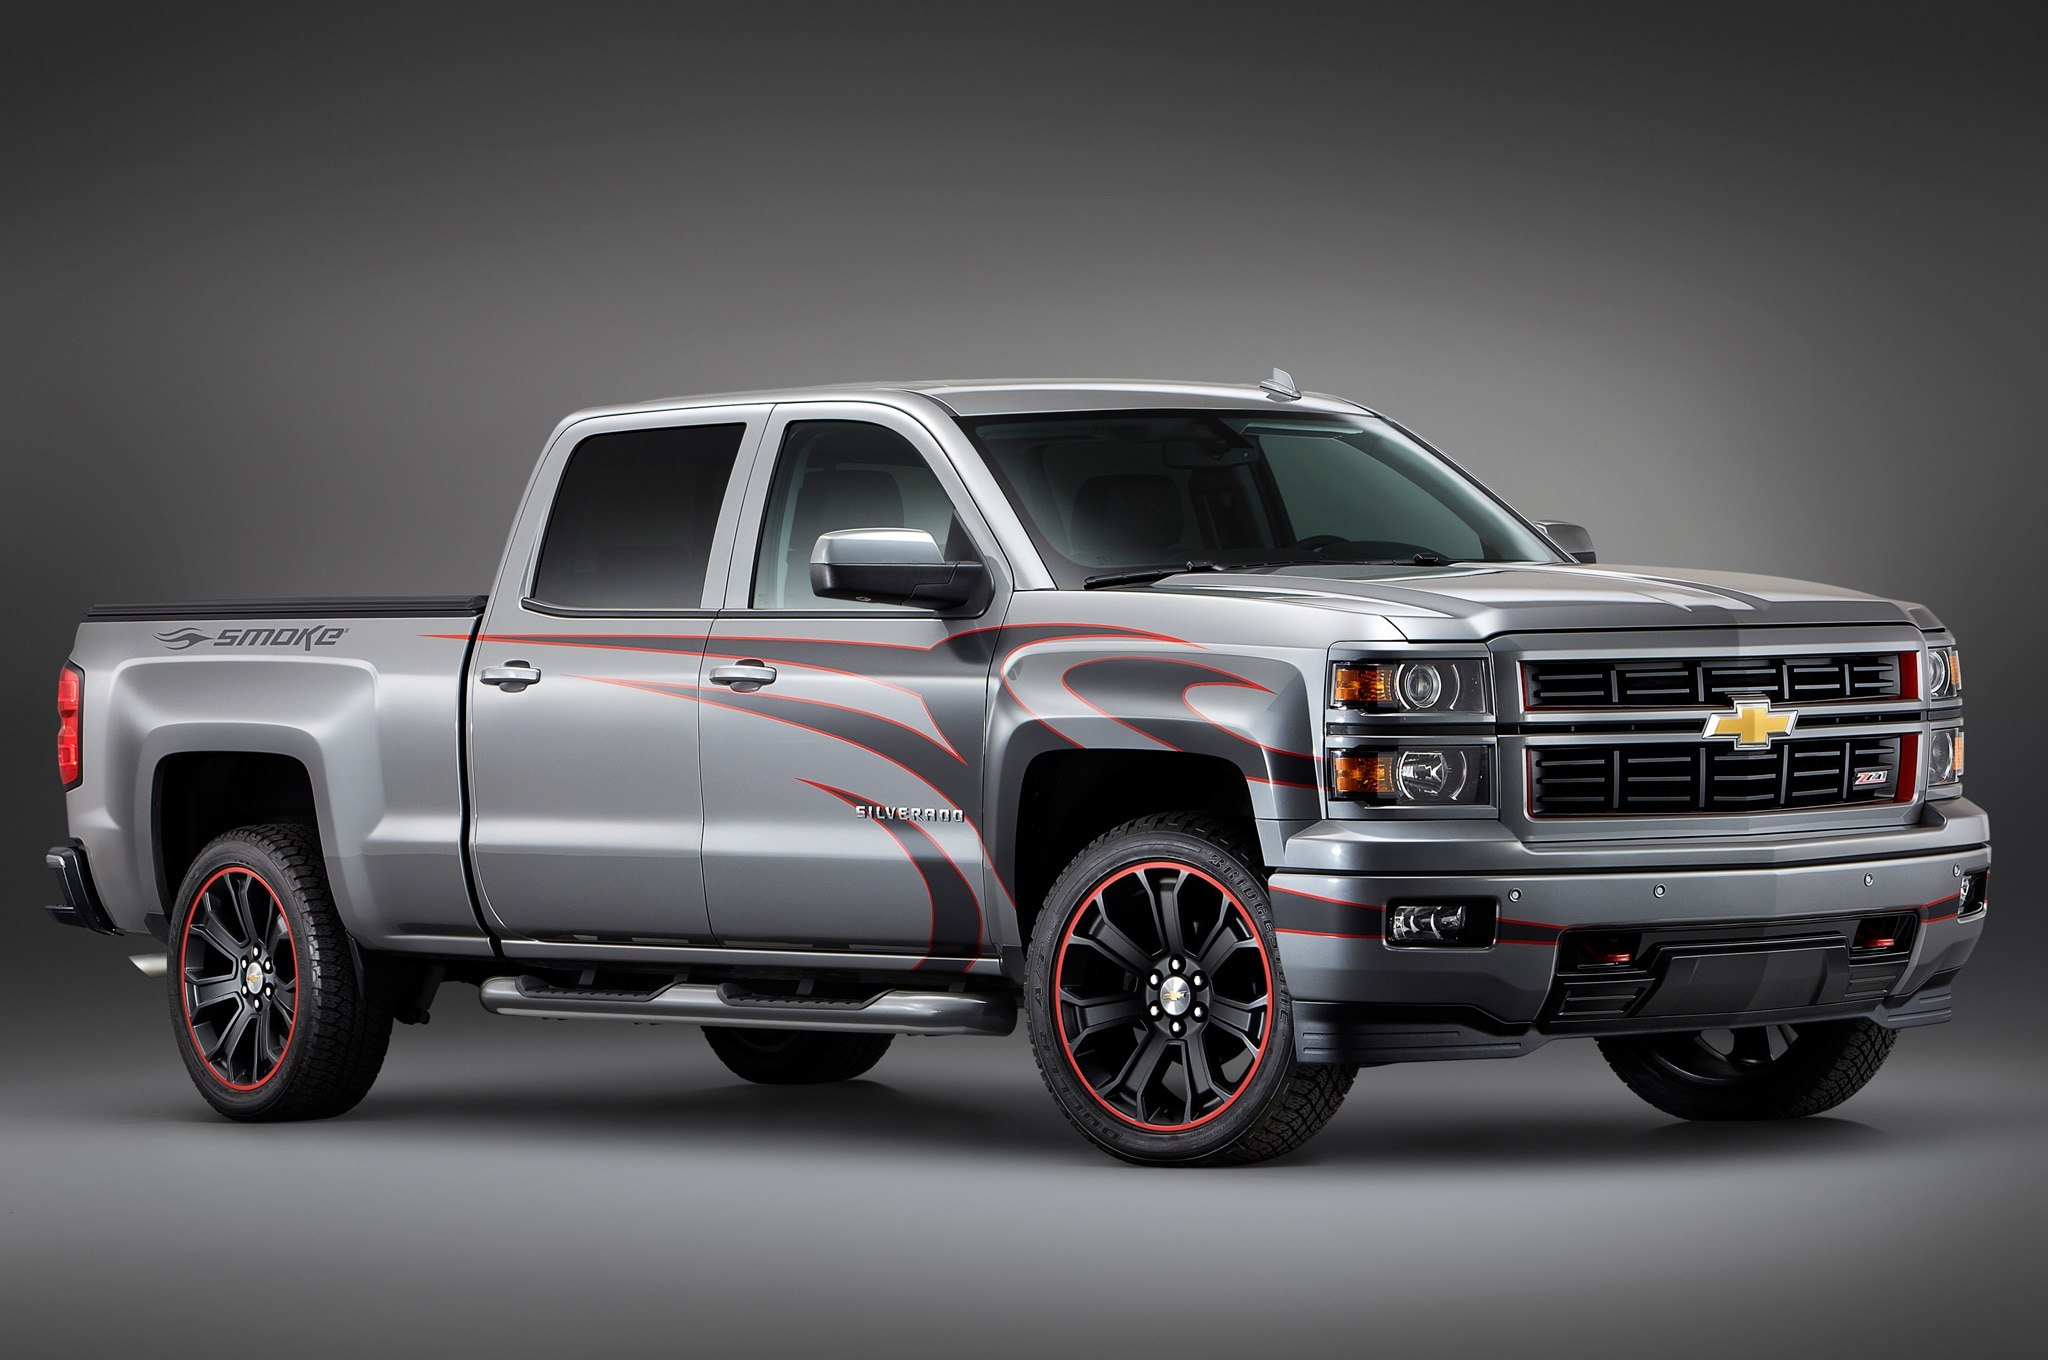 2019 Chevrolet Silverado Concept >> SEMA 2013: Chevrolet Rolls Out Customized 2014 Silverado, 2015 Tahoe Trucks